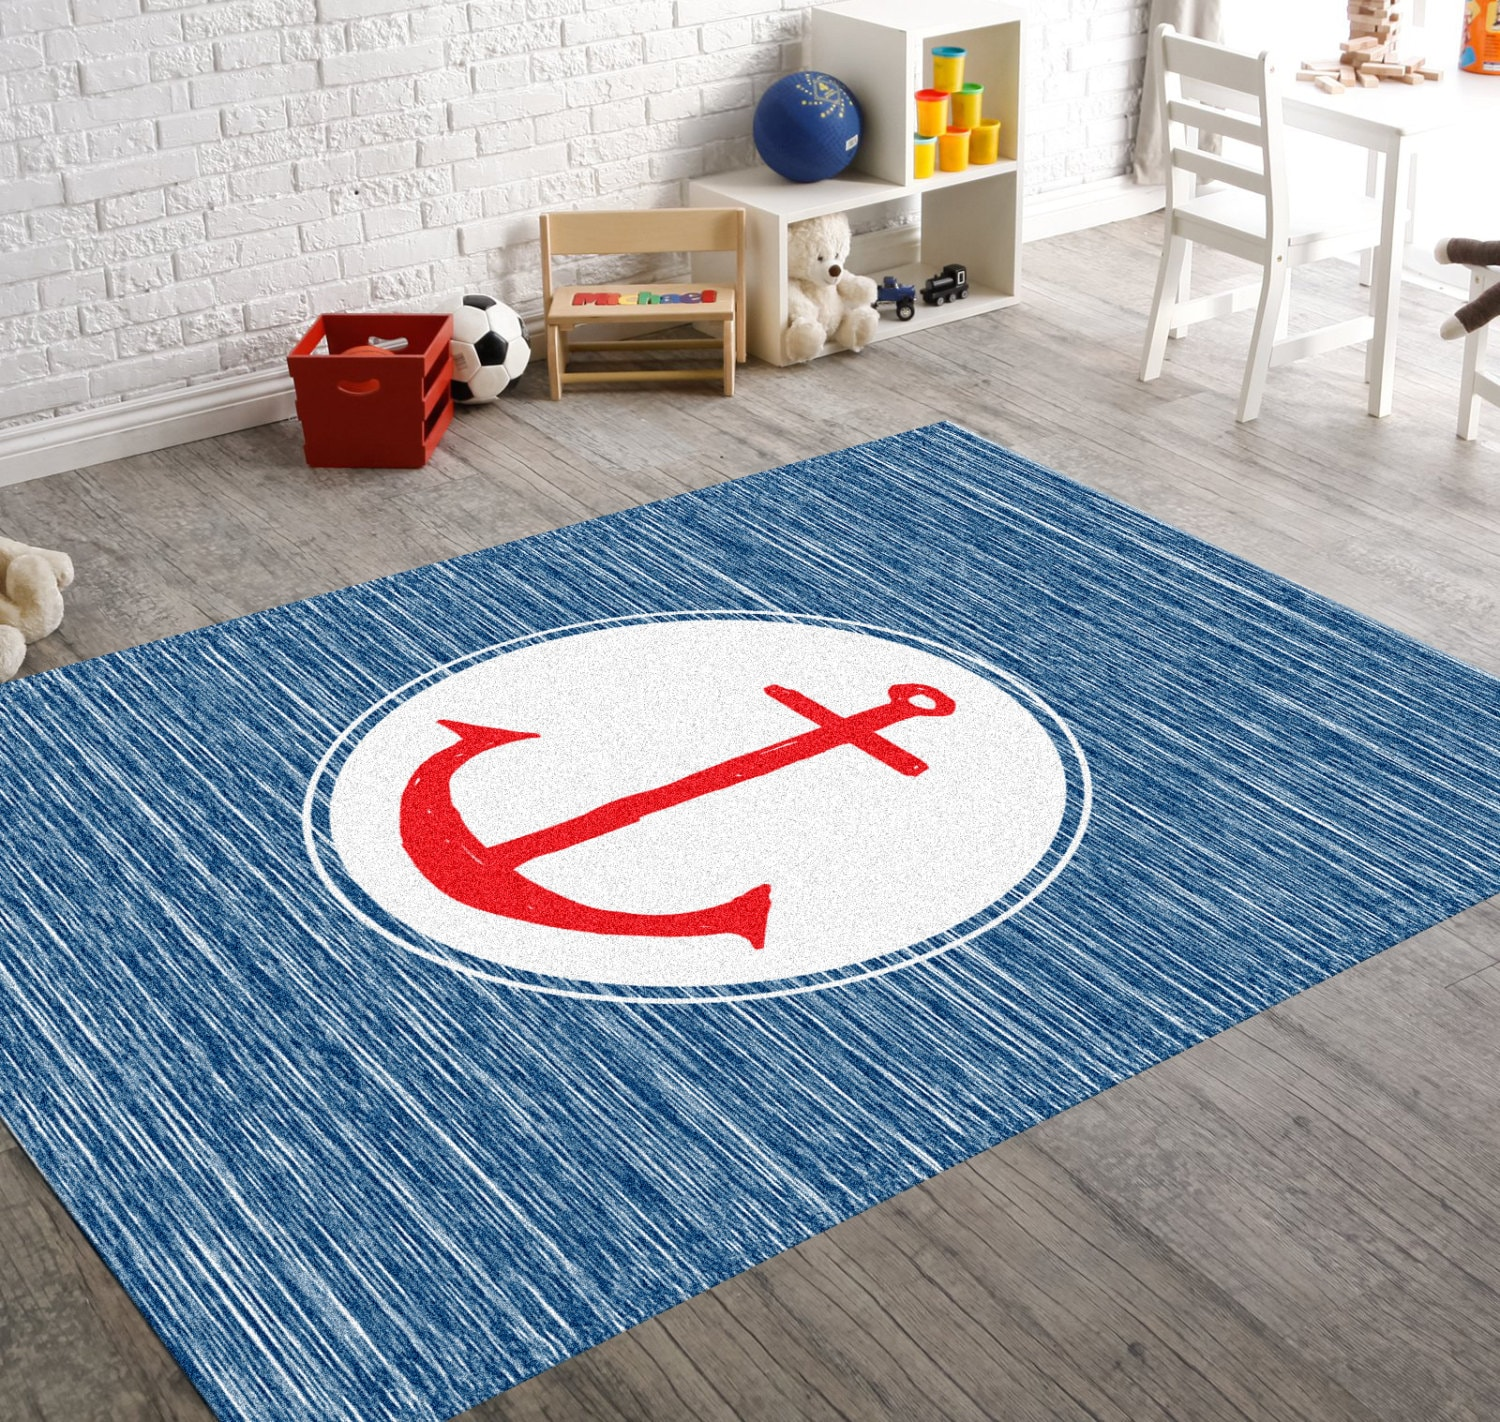 Anchor Rugs: Anchor Rug Nautical Rug Navy Rug Beach House By HawkerPeddler